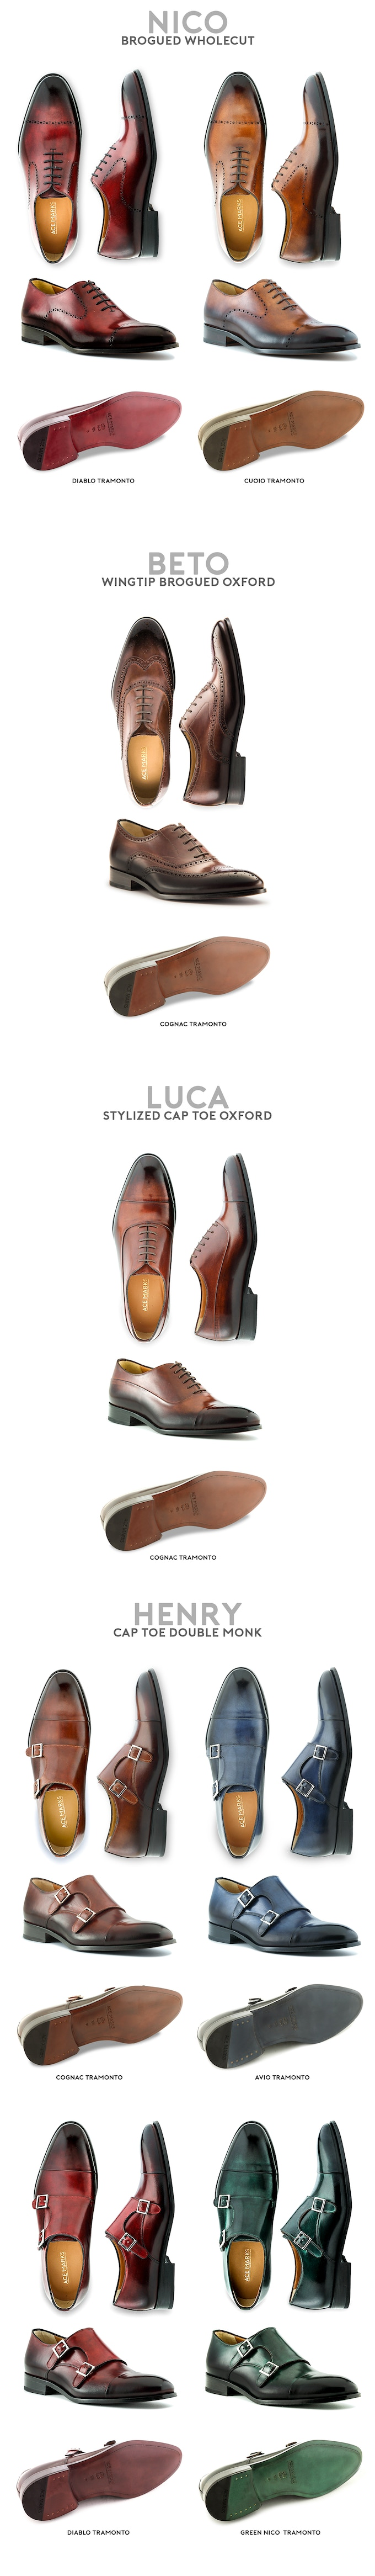 Handcrafted Dress Shoes Sneakers Reinvented For Modern Men By Ace D Island Slip On British Comfort Leather Dark Brown Now Only Select Styles In Colors Are Available With Our Tramonto Patina Each Outsole Is Dyed To Match The Upper Unless A